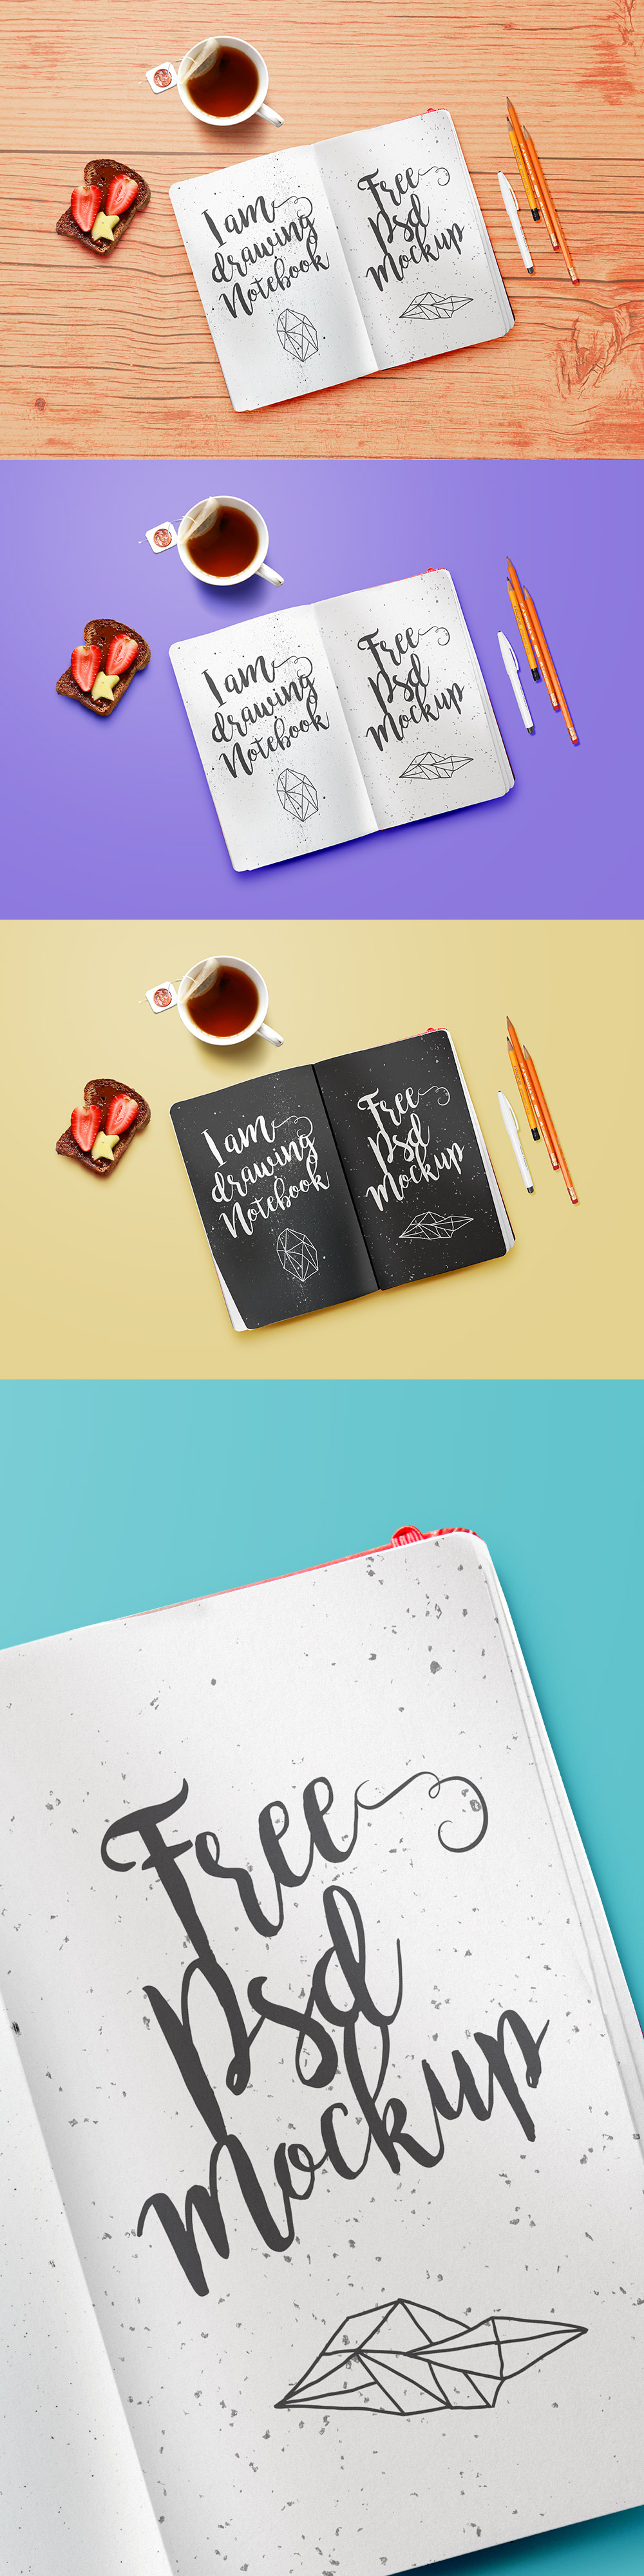 Drawing Notebook Mockup PSD